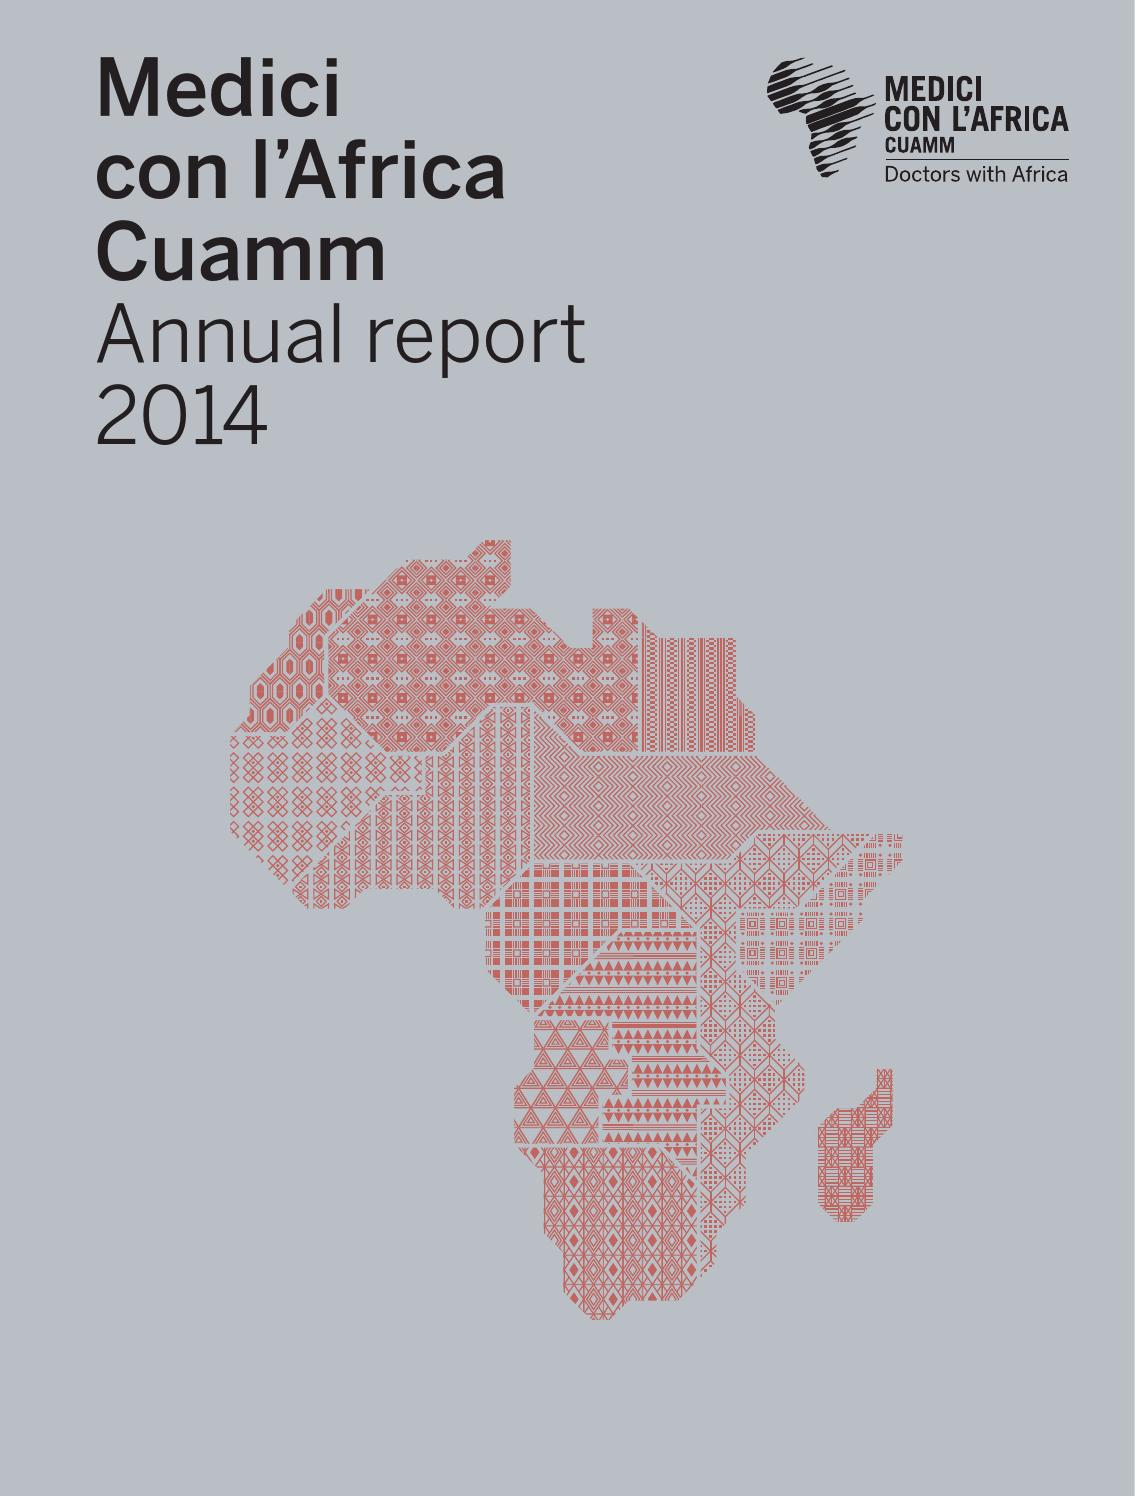 Africa Subsahariana Cartina Fisica.Medici Con L Africa Cuamm Annual Report 2014 By Medici Con